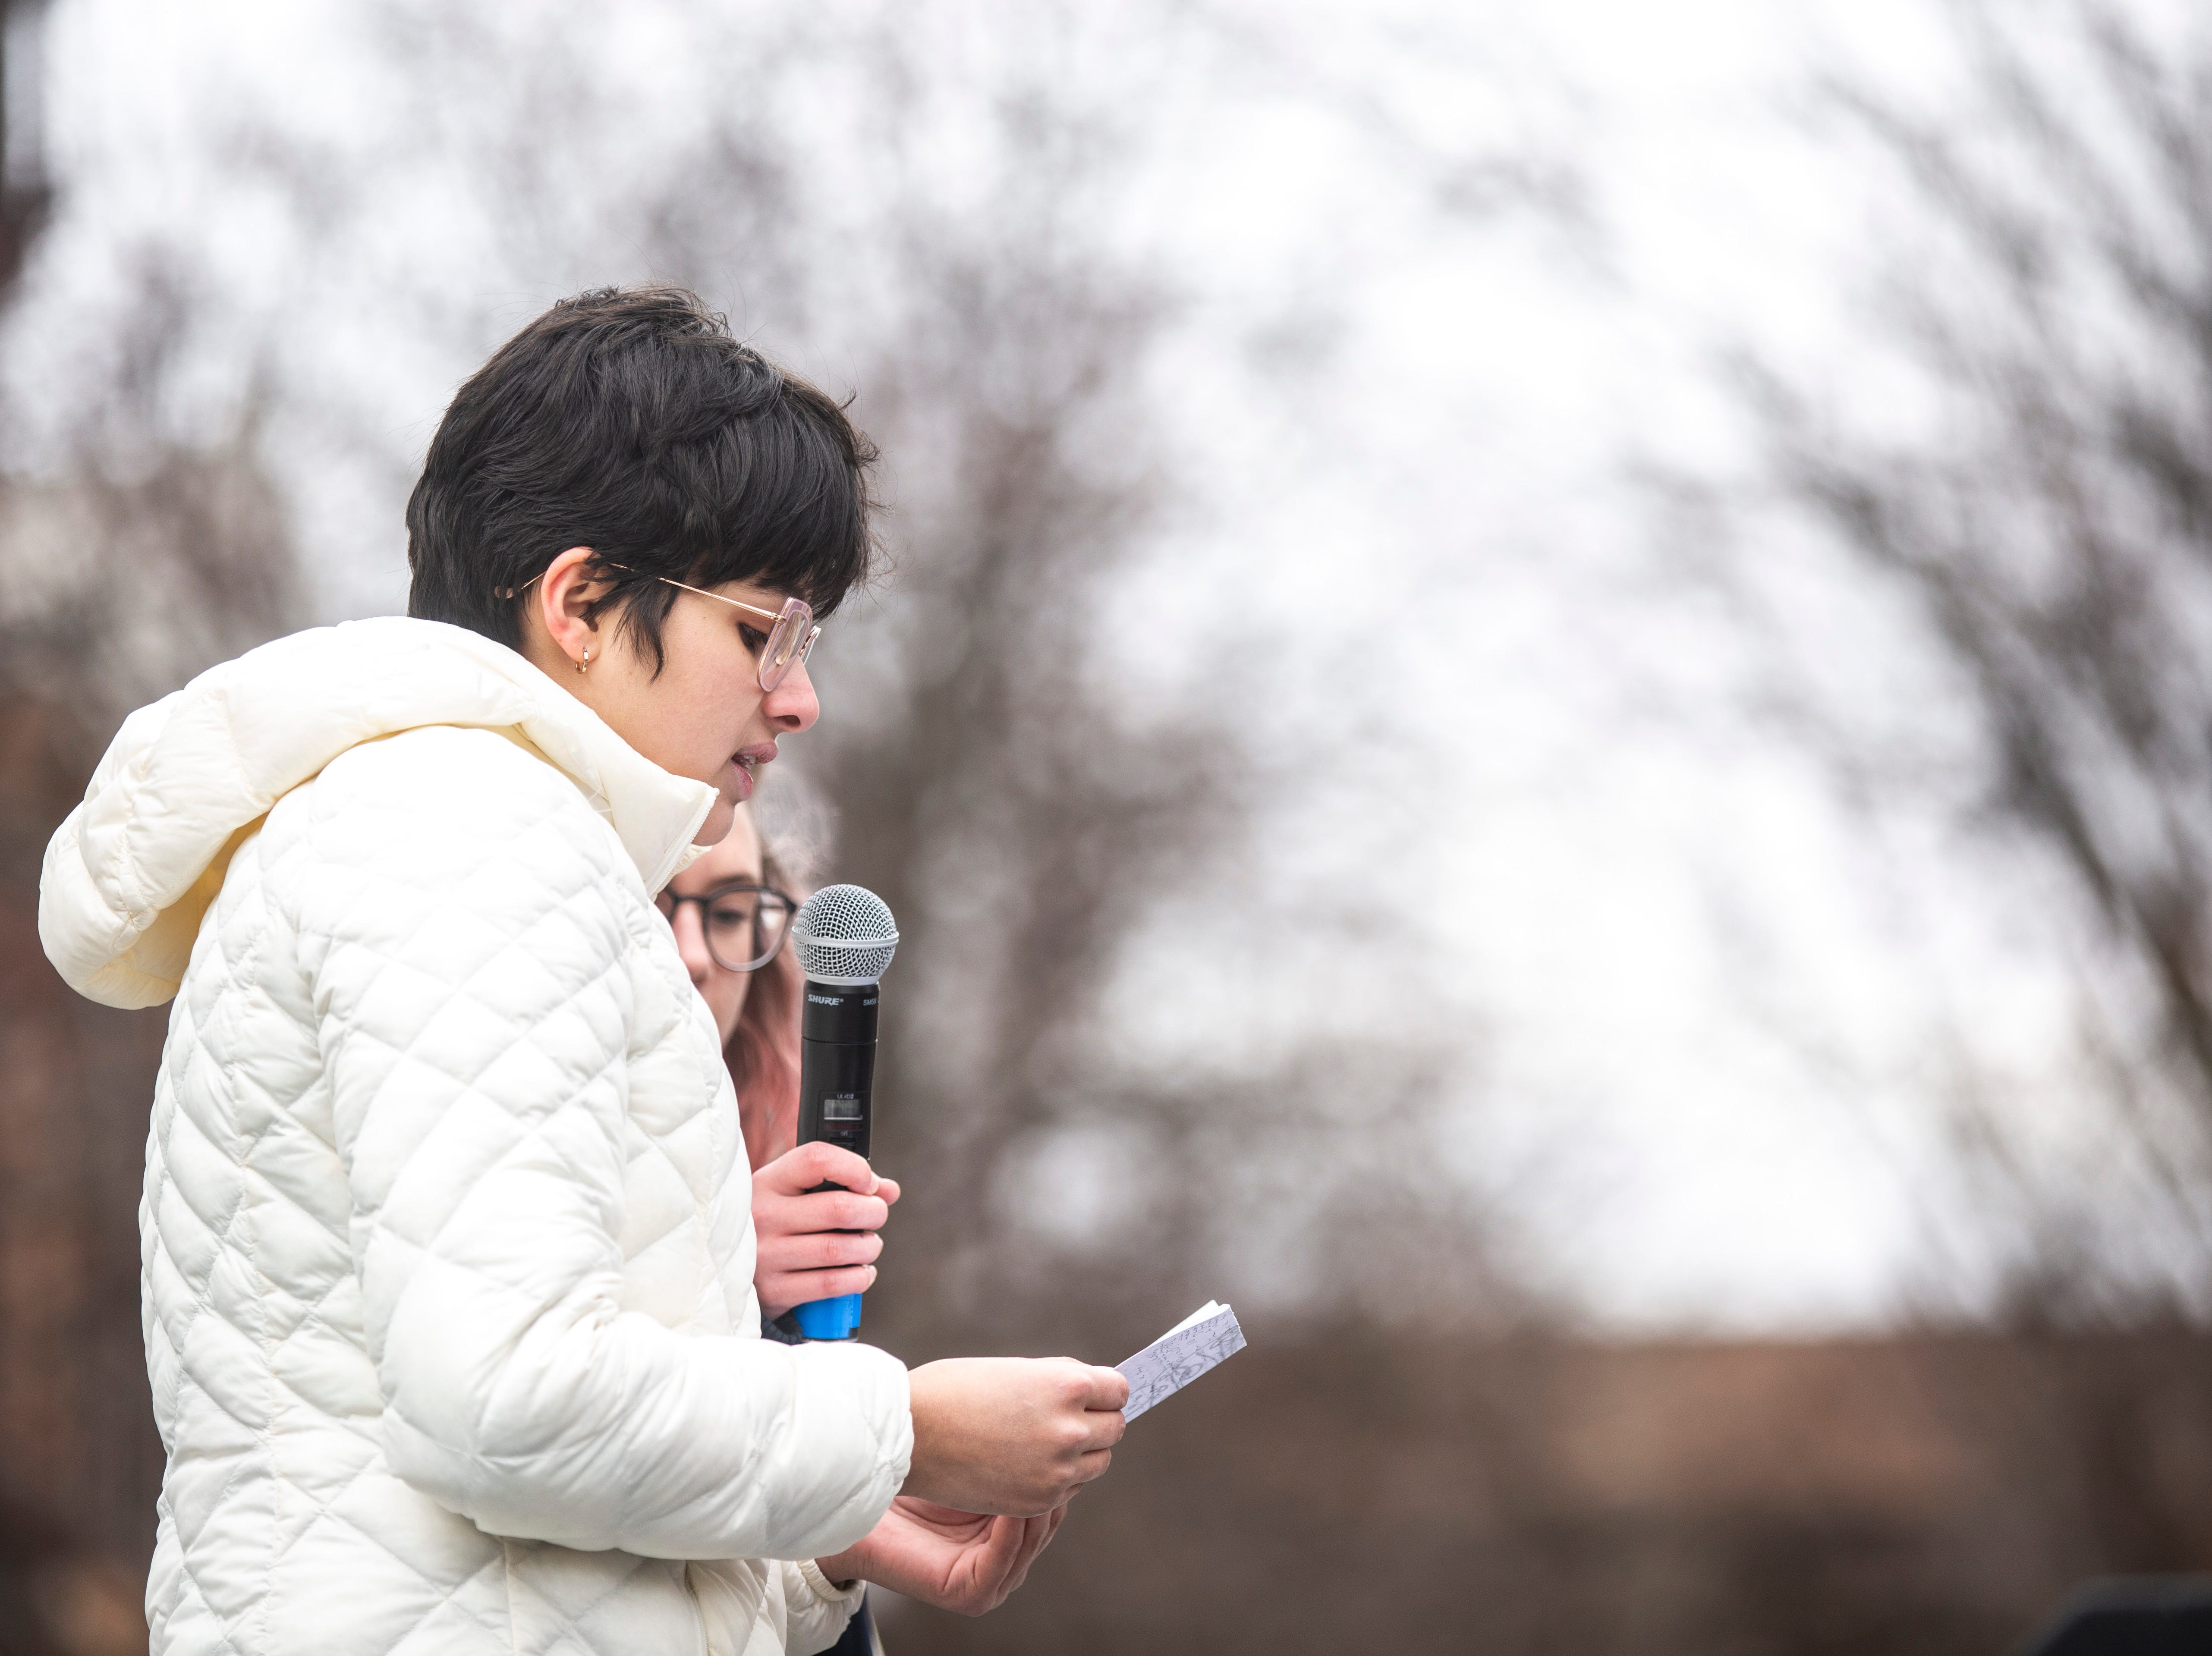 City High sophomore Shoshie Hemley speaks during an event organized by the Students Against School Shootings group on Saturday, March 30, 2019, along the pedestrian mall in downtown Iowa City, Iowa.